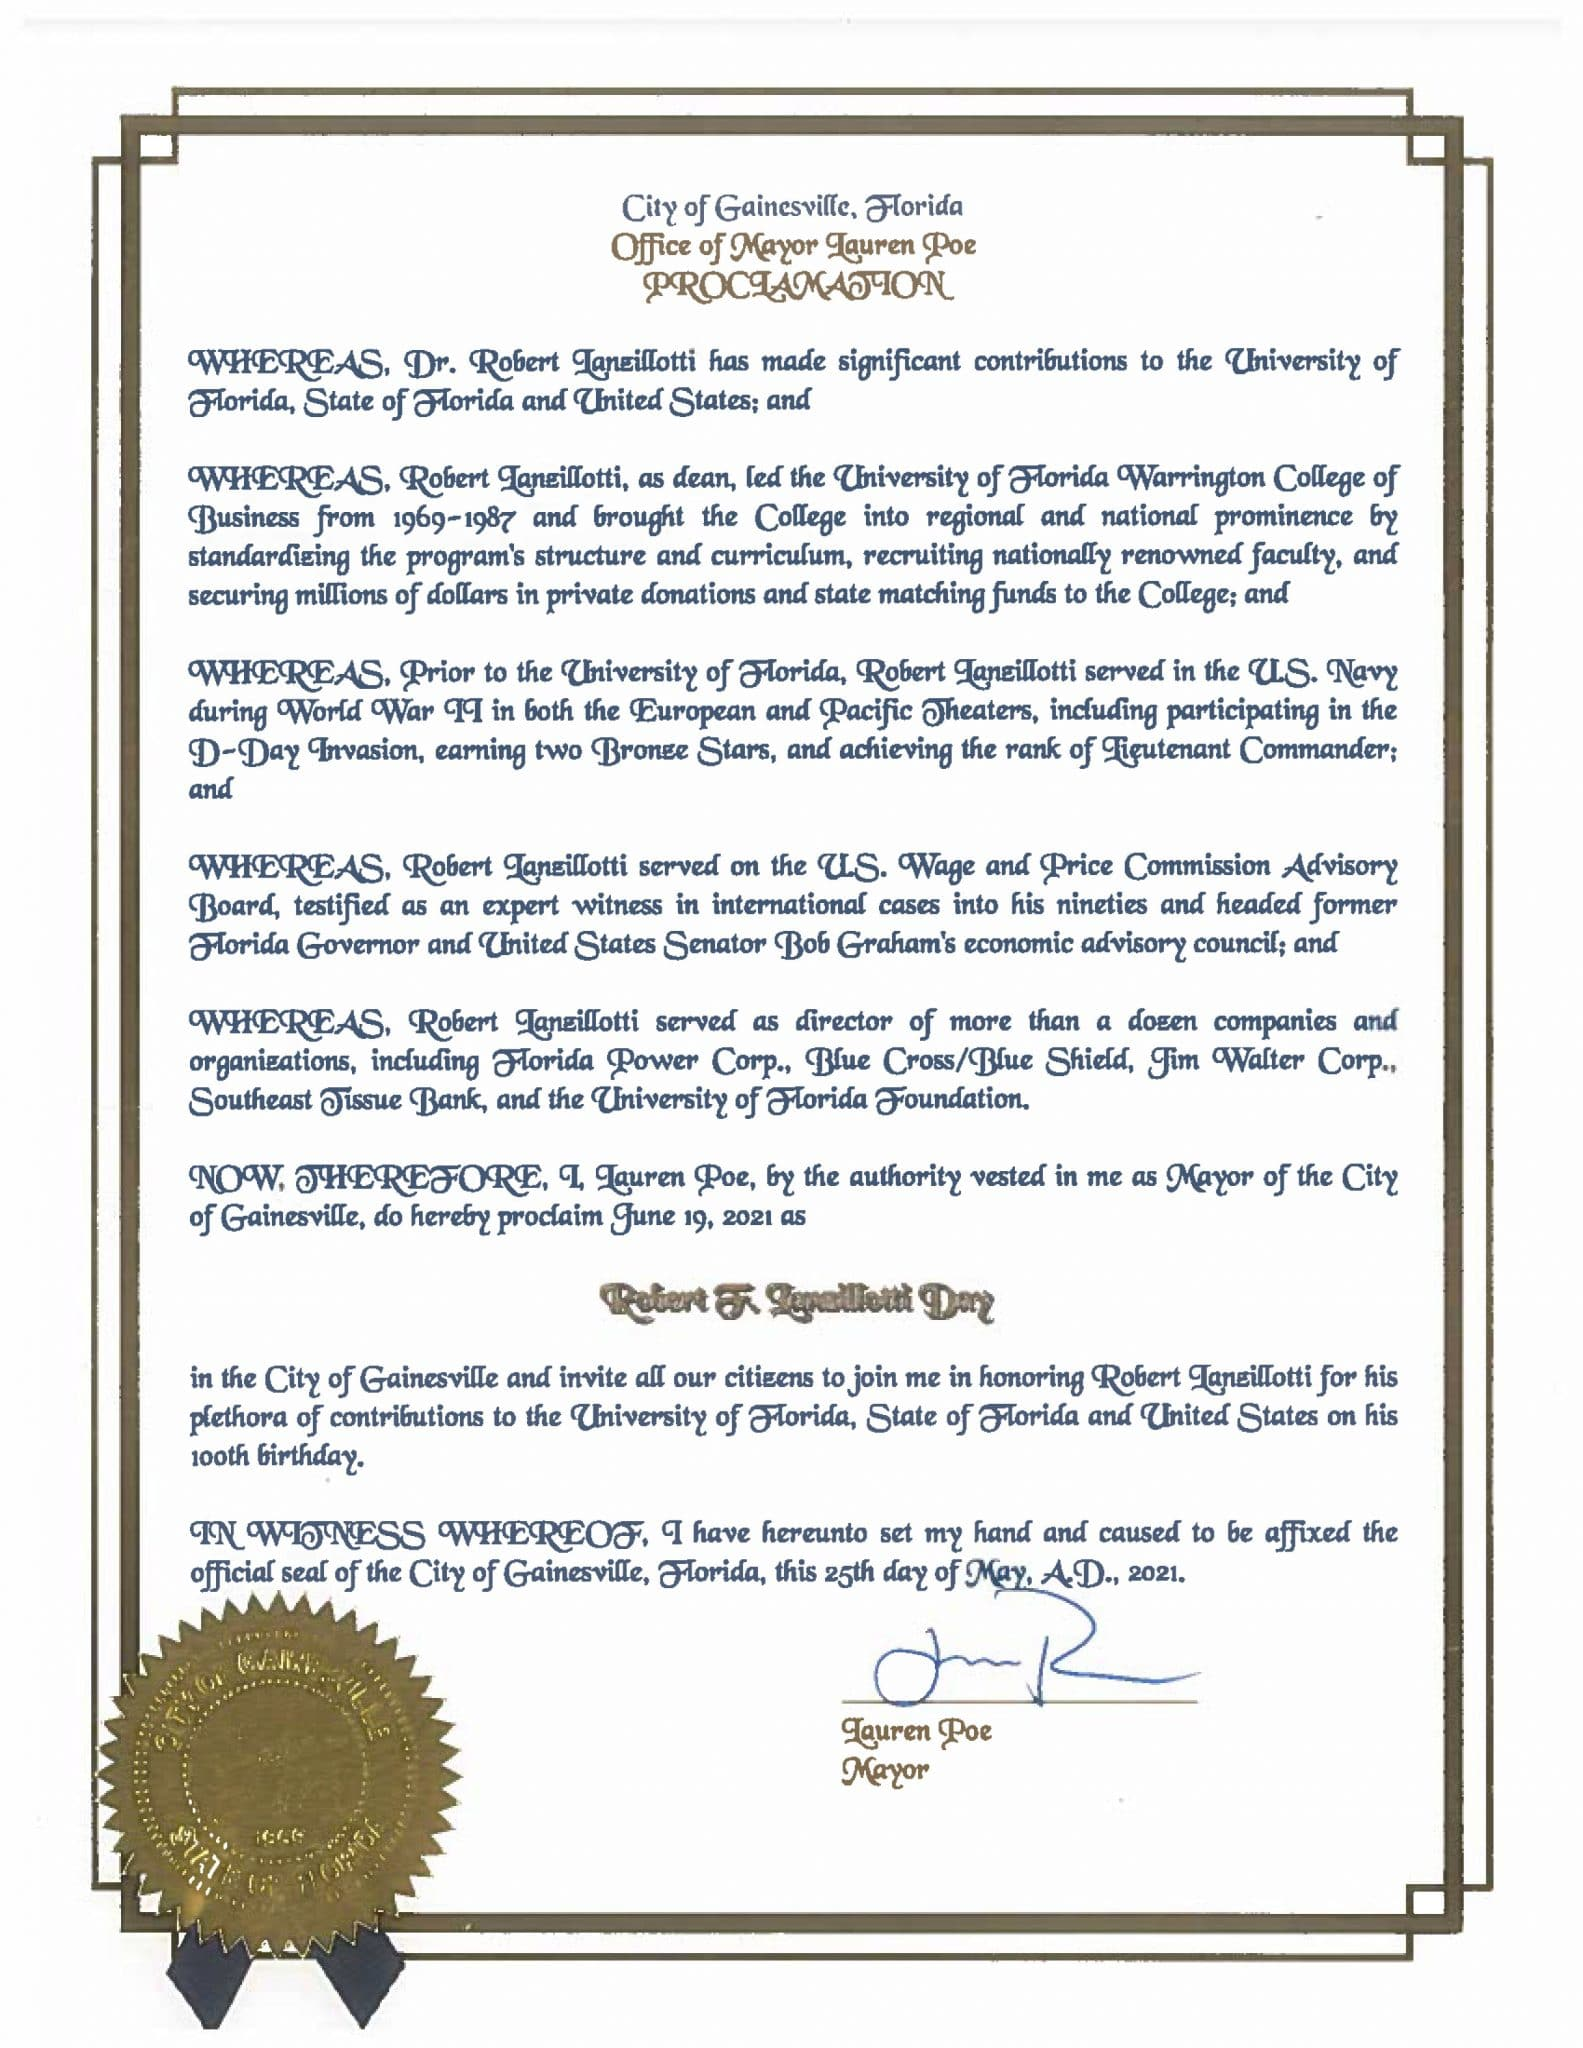 Proclamation from the City of Gainesville in honor of Robert Lanzillotti